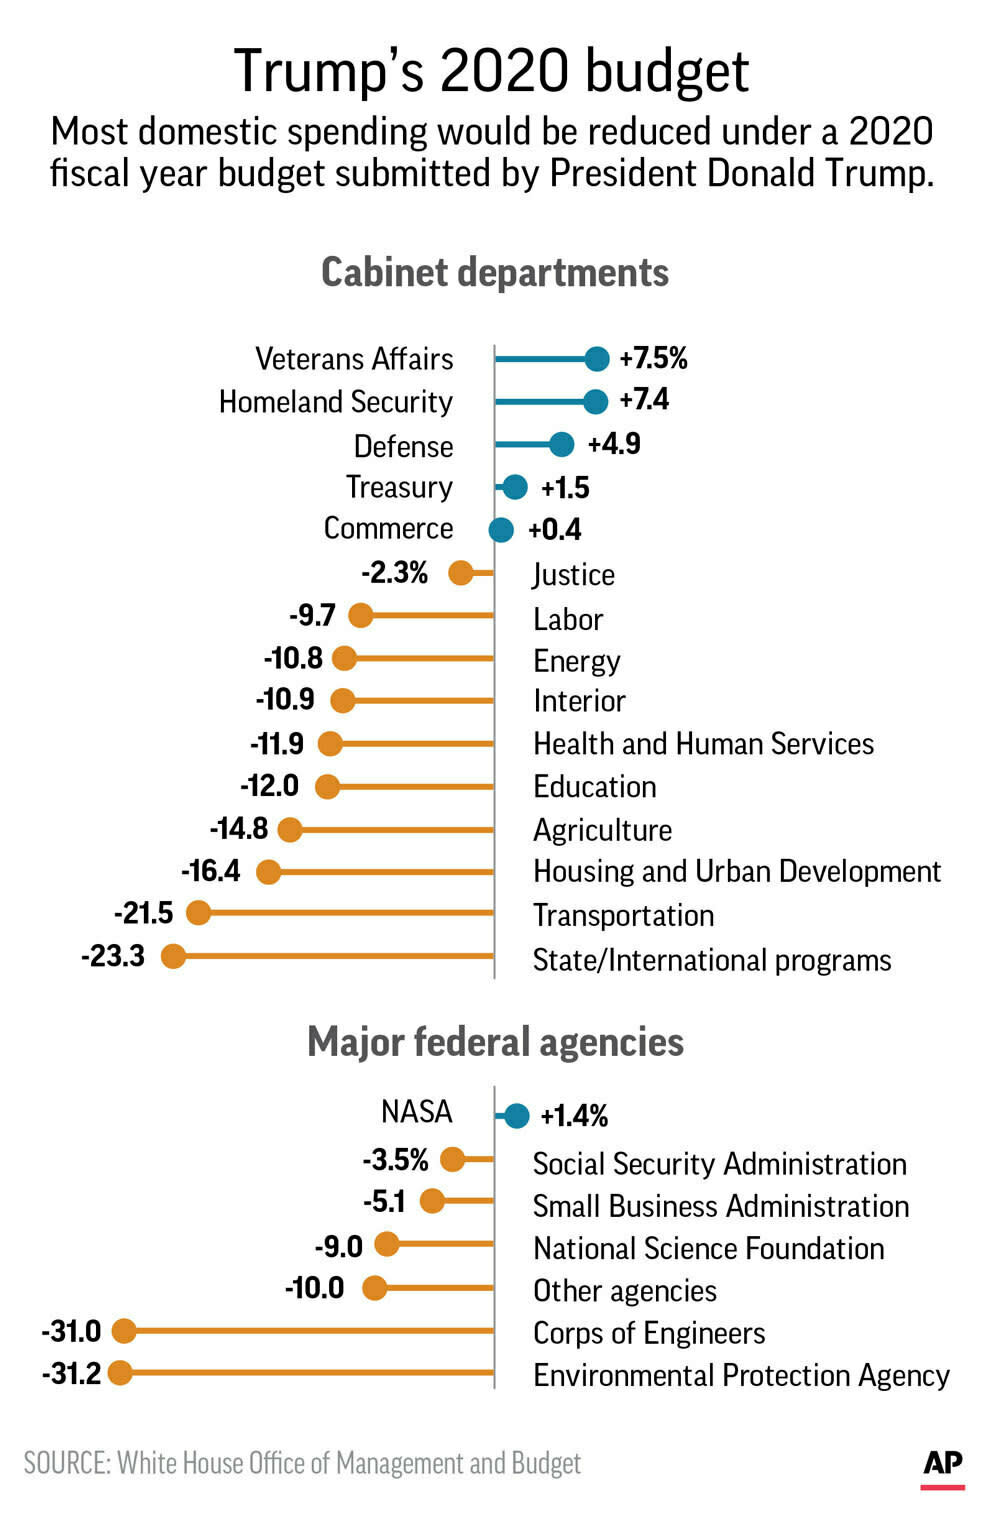 Highlights of president Donald Trump's 2020 federal budget;